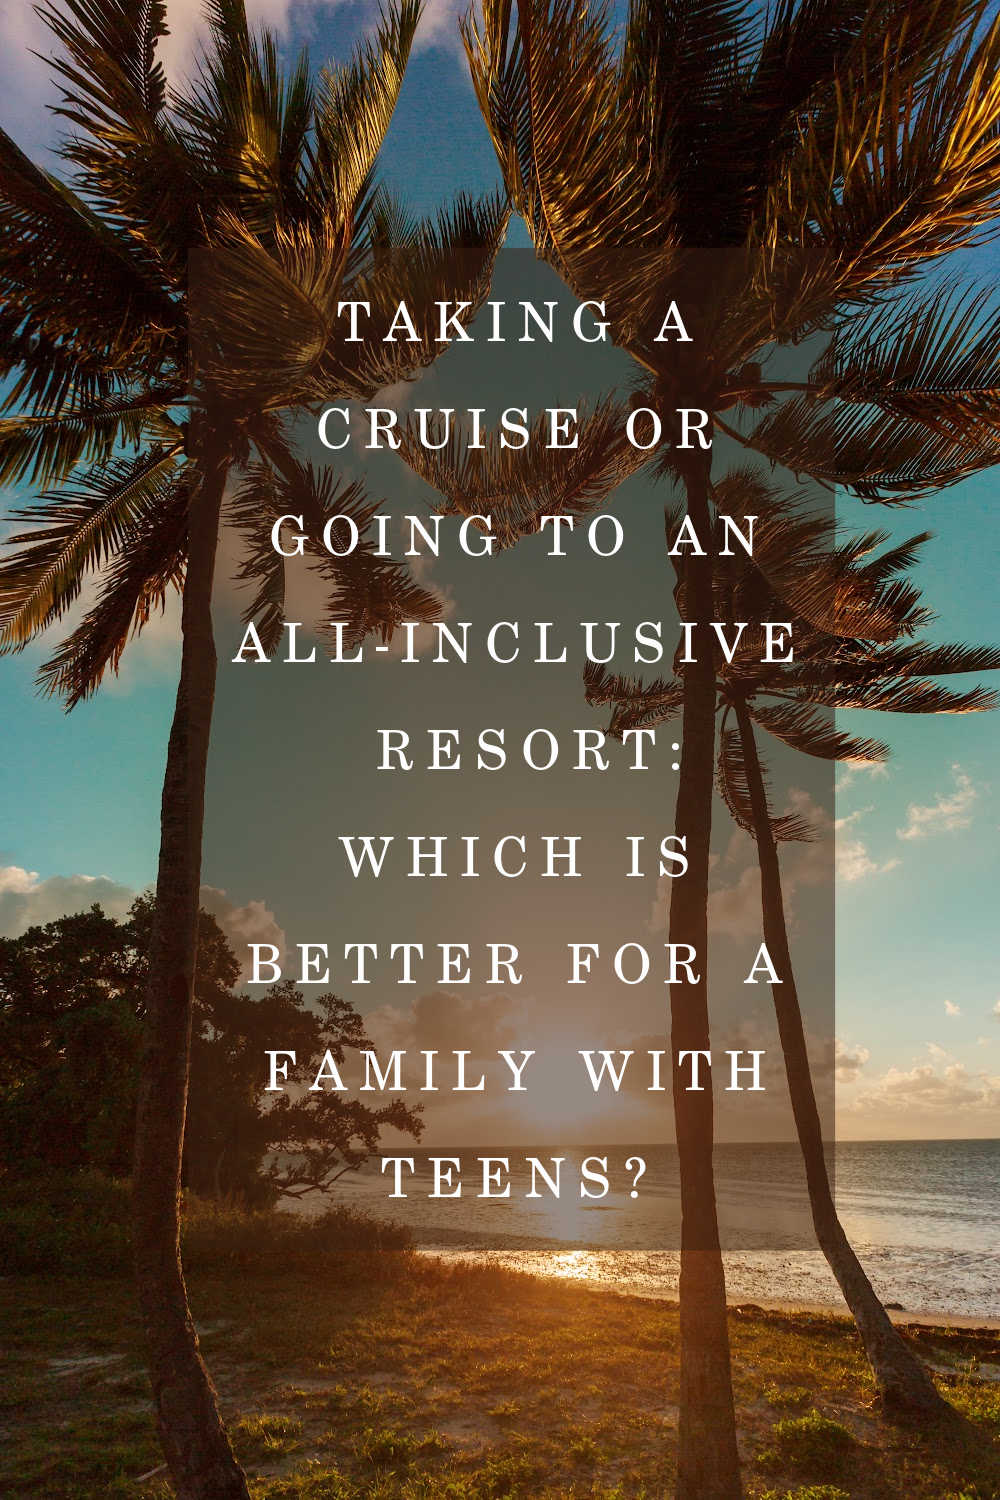 CRUISE OR ALL INCLUSIVE WITH TEENS